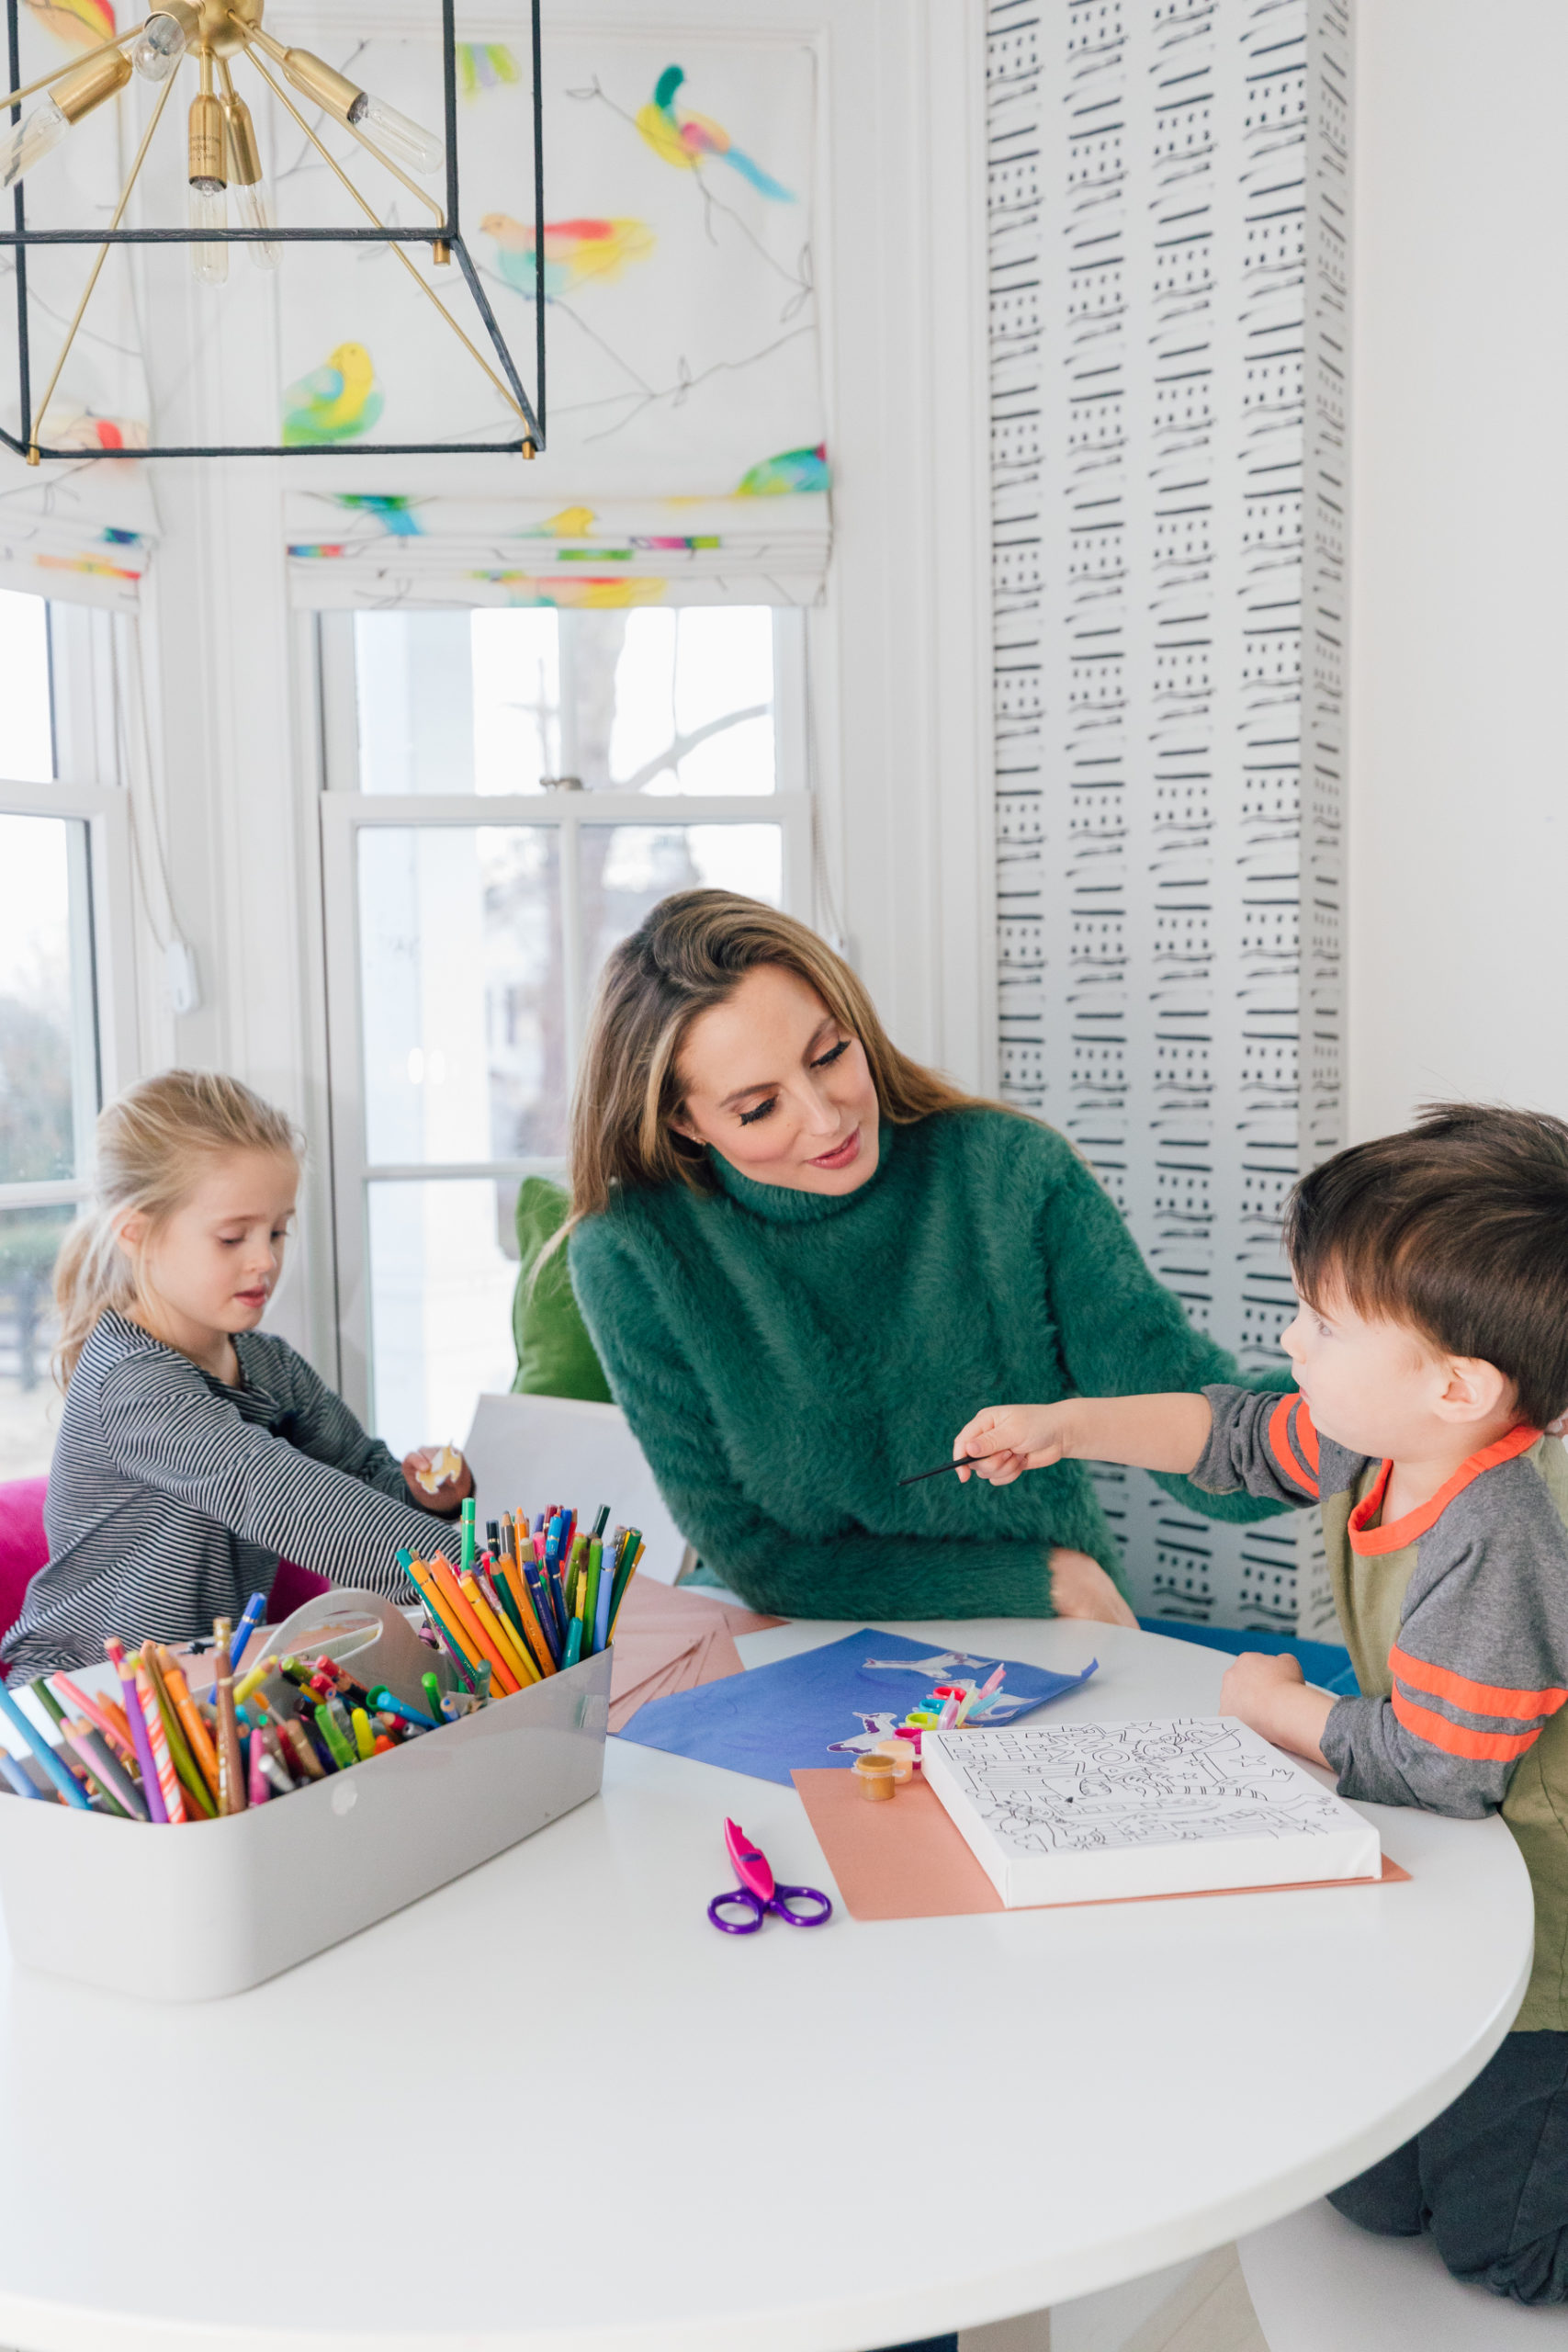 Blogger Eva Amurri shares the Ultimate Educational Resource Guide For Families During Self-Isolation